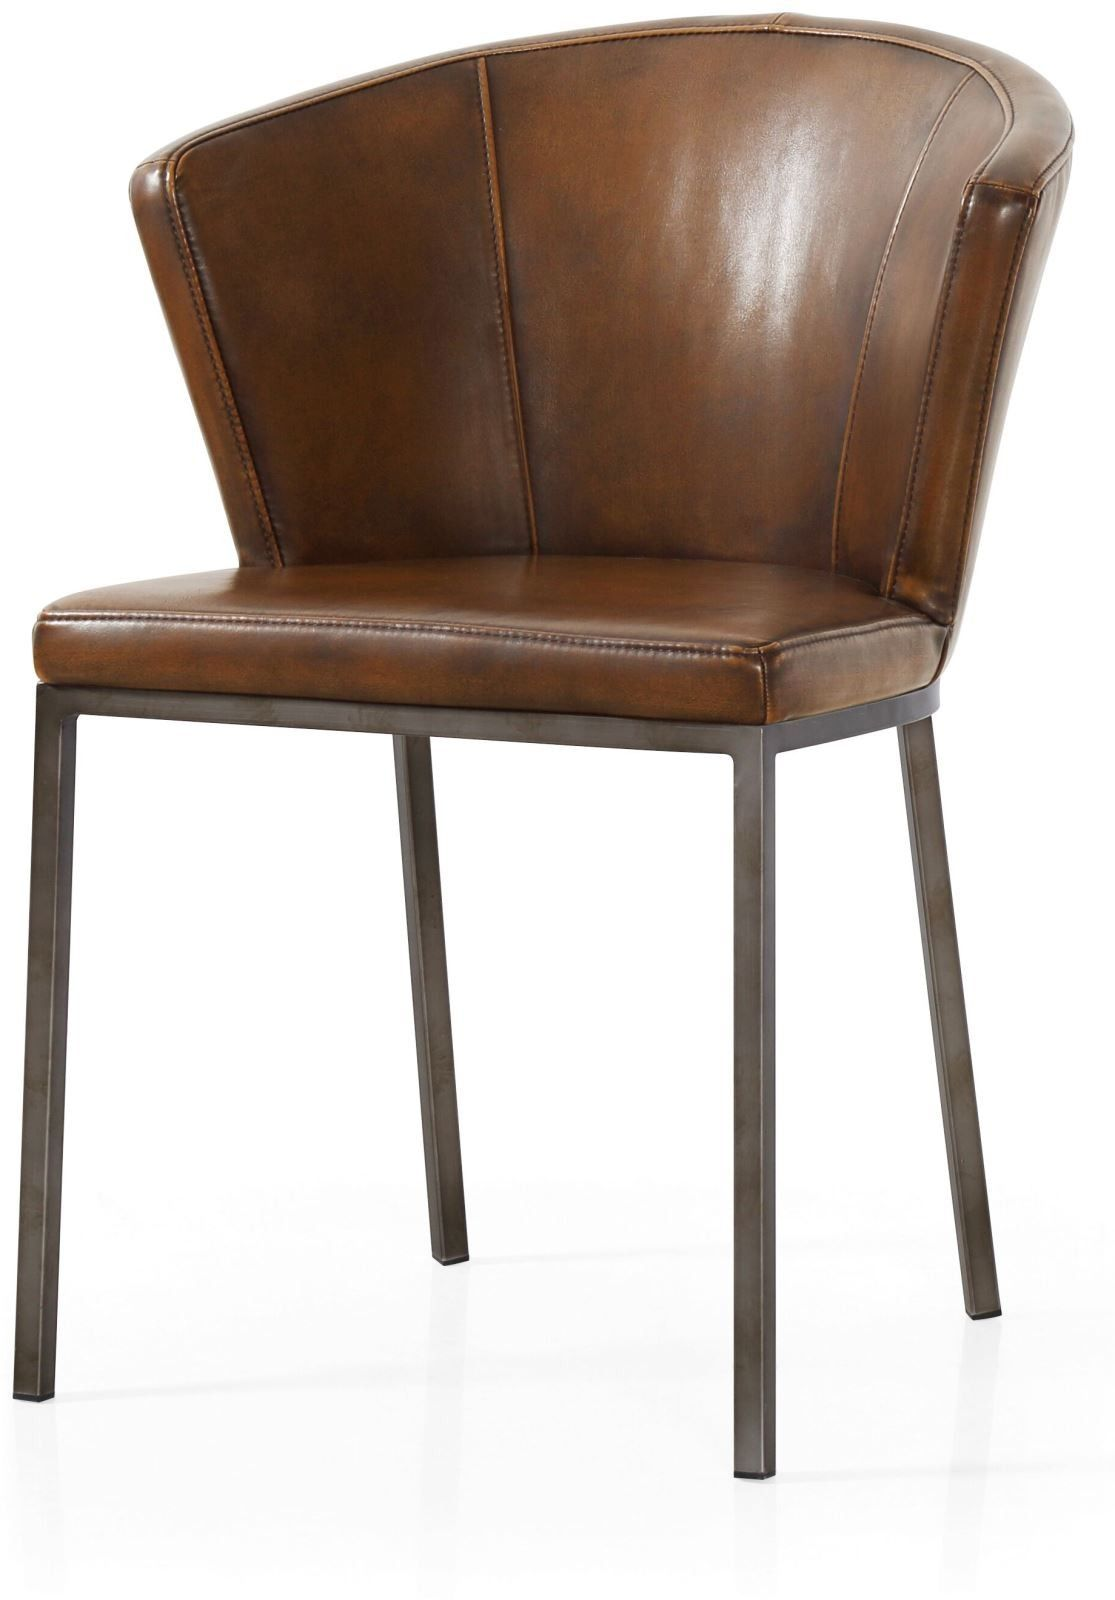 Industrial Interiors Perfectly Pair Style Curved Dining Dinning Rooms Top Retro Dining Chairs Retro Chair Leather Dining Chairs